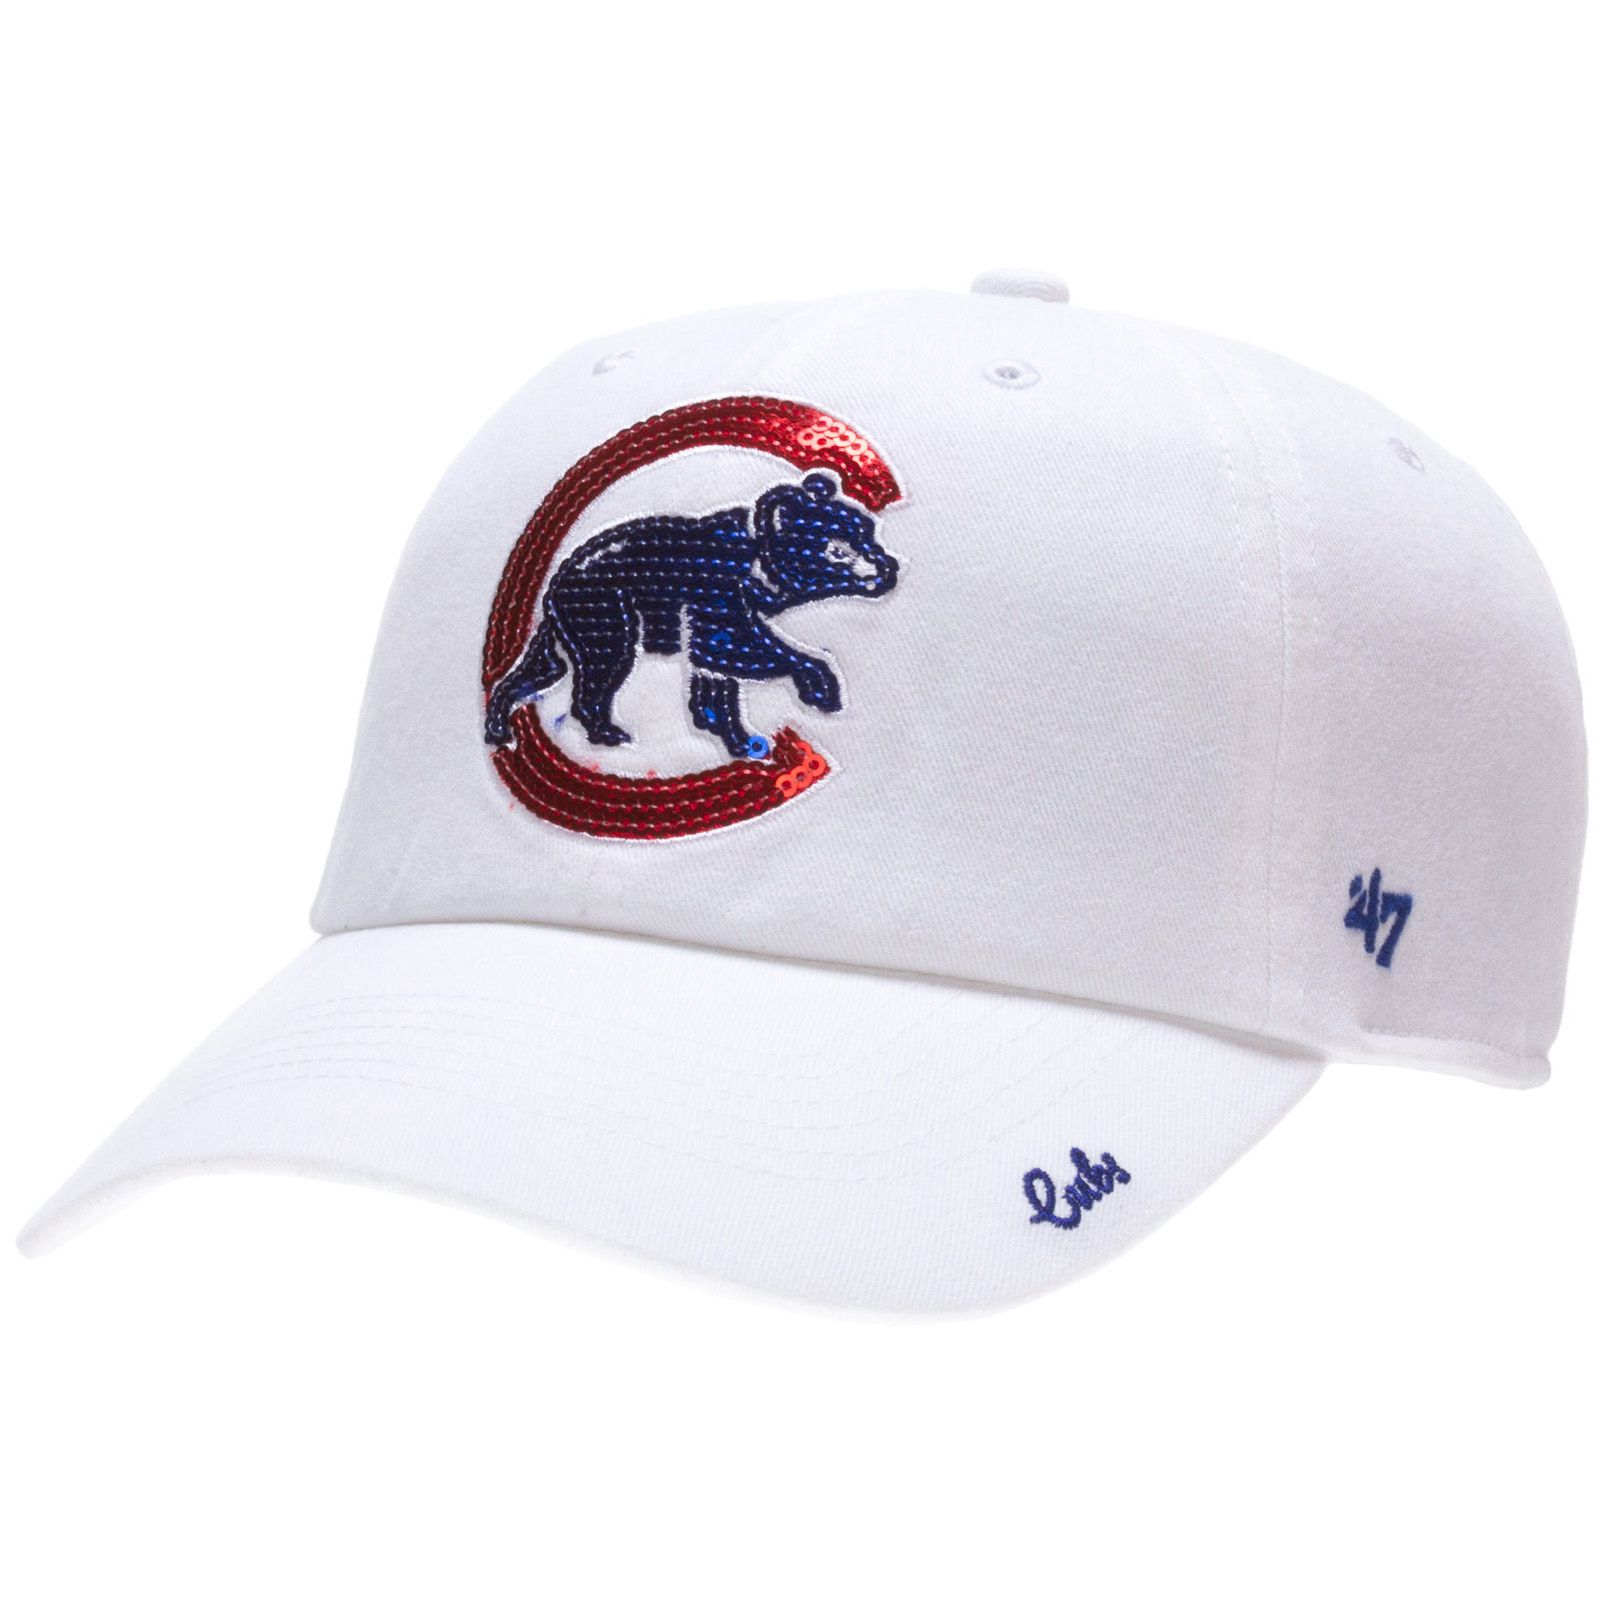 a6a57d9da9ba9 Chicago Cubs Womens White Sparkle Adjustable Hat by 47 Brand  Chicago  Cubs   ChicagoCubs